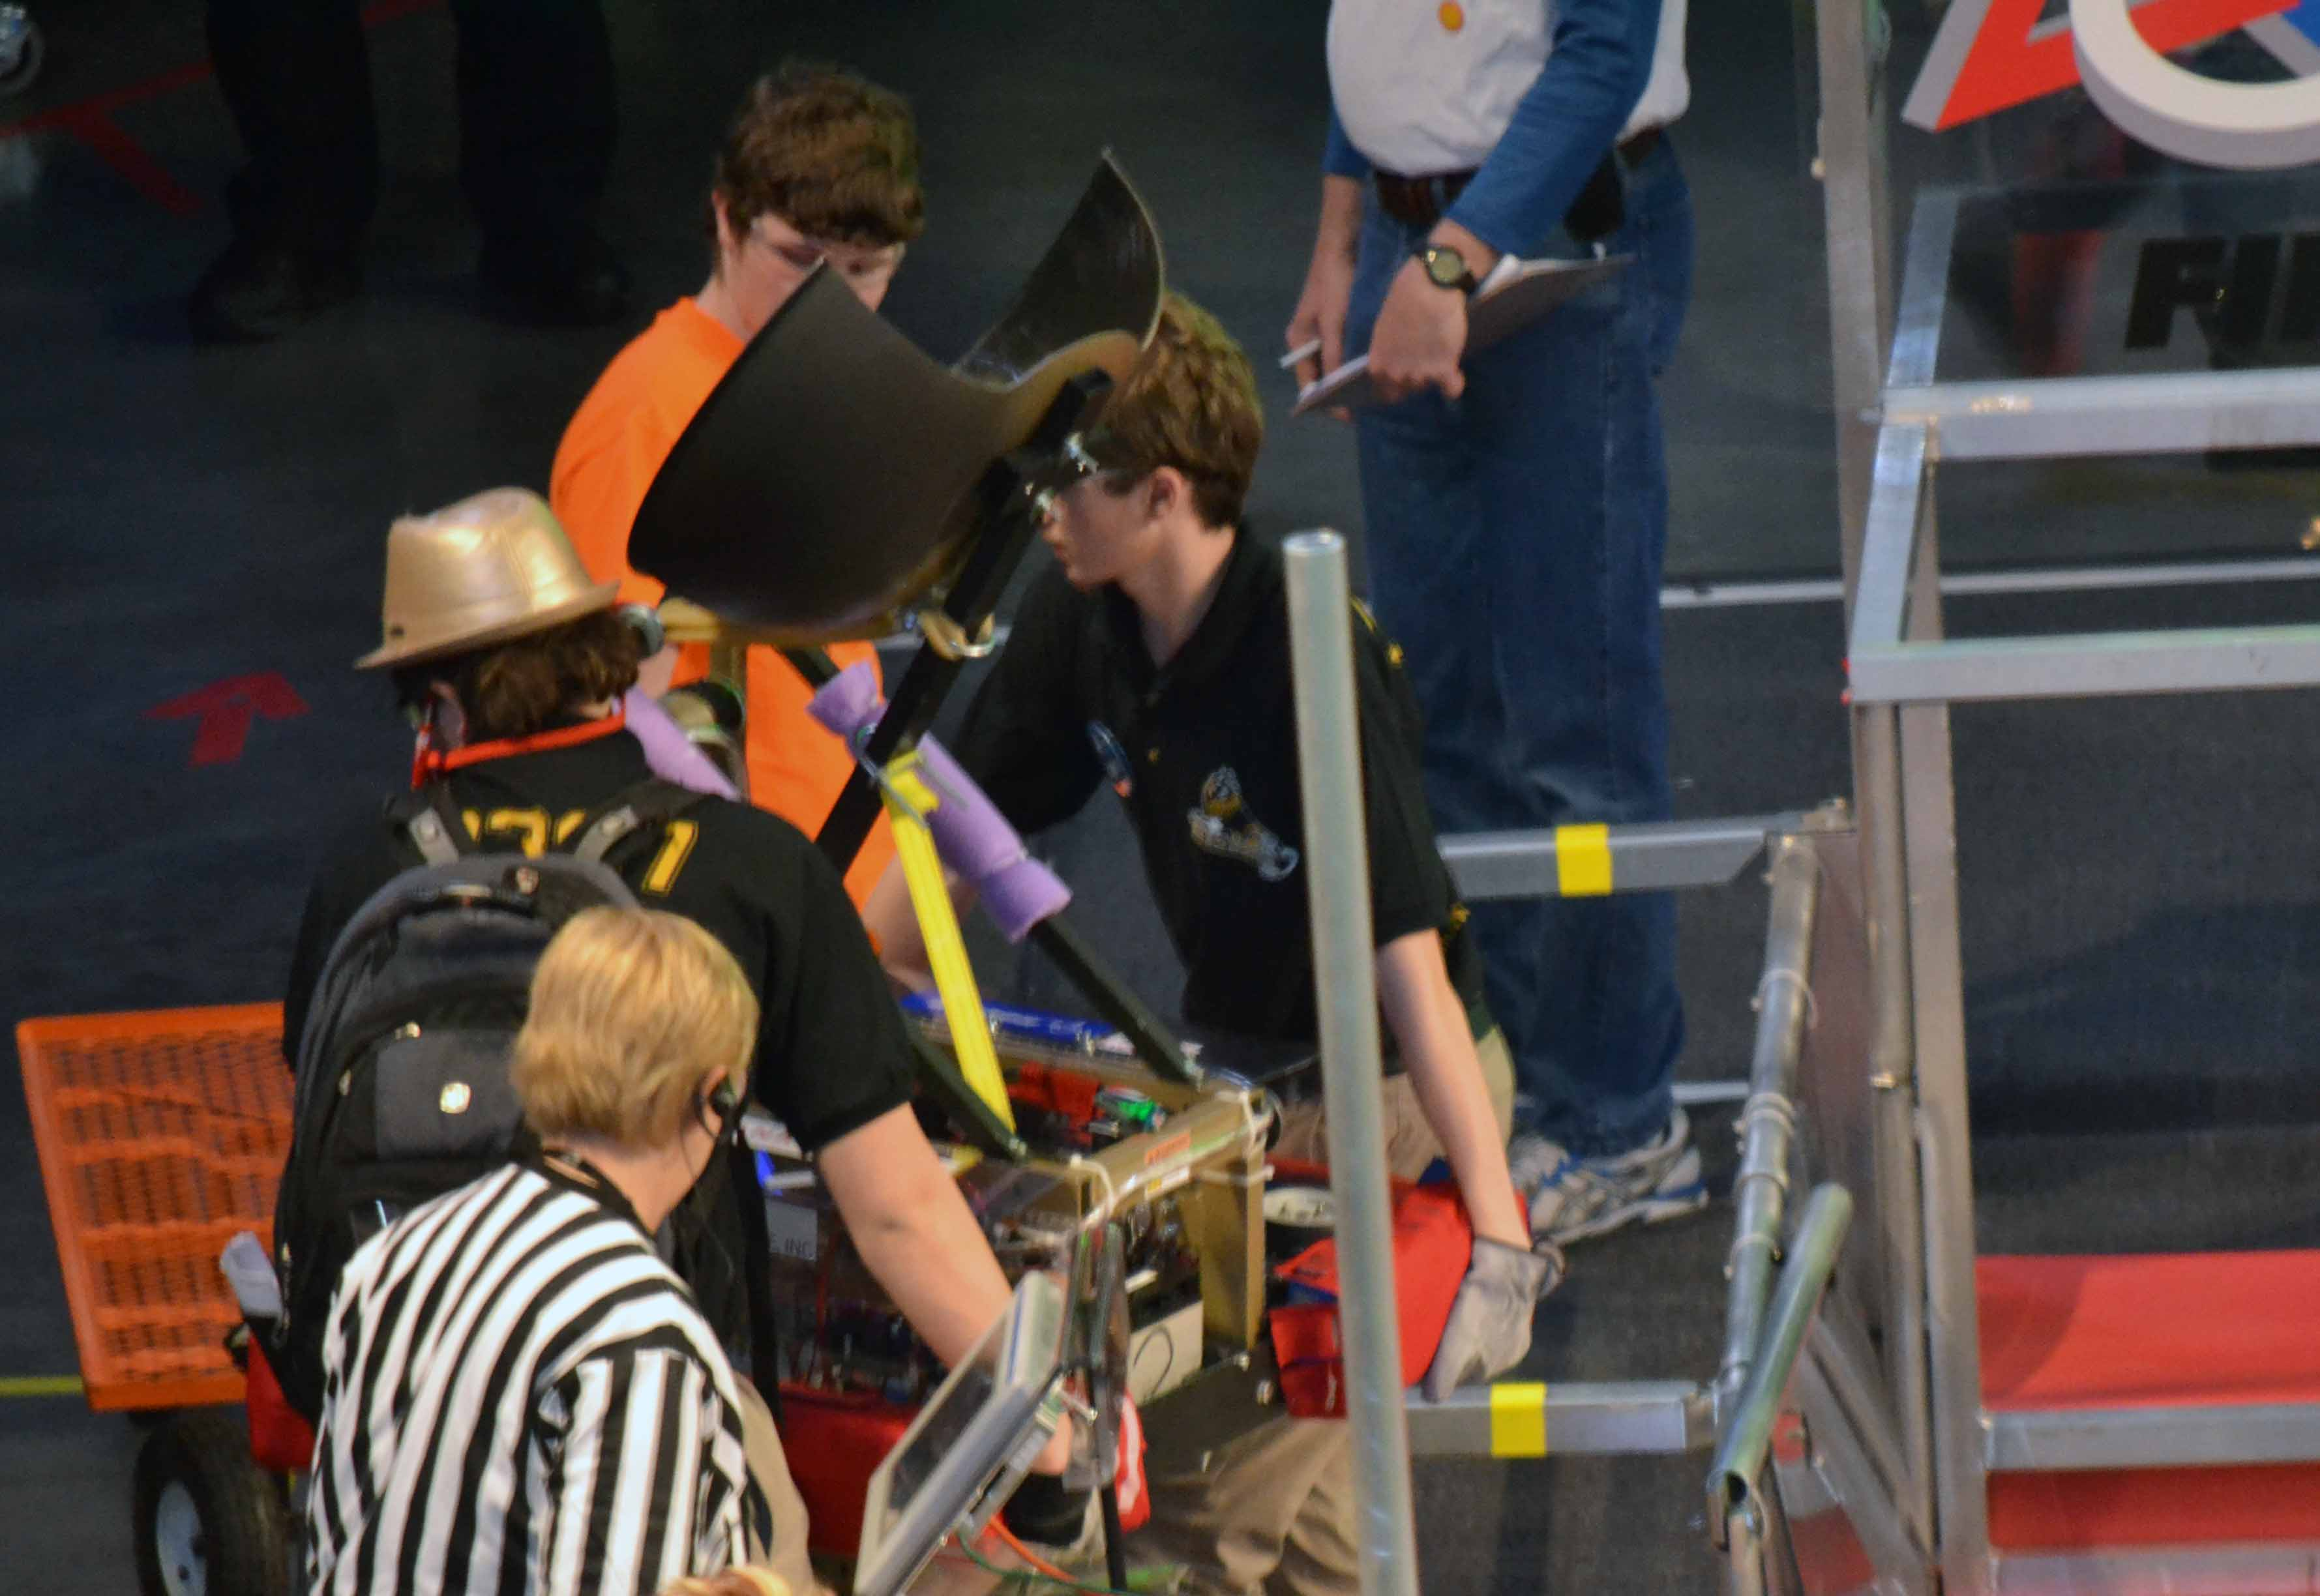 Walter Deitzler and Joshua Stueck remove the robot from the field after a match.